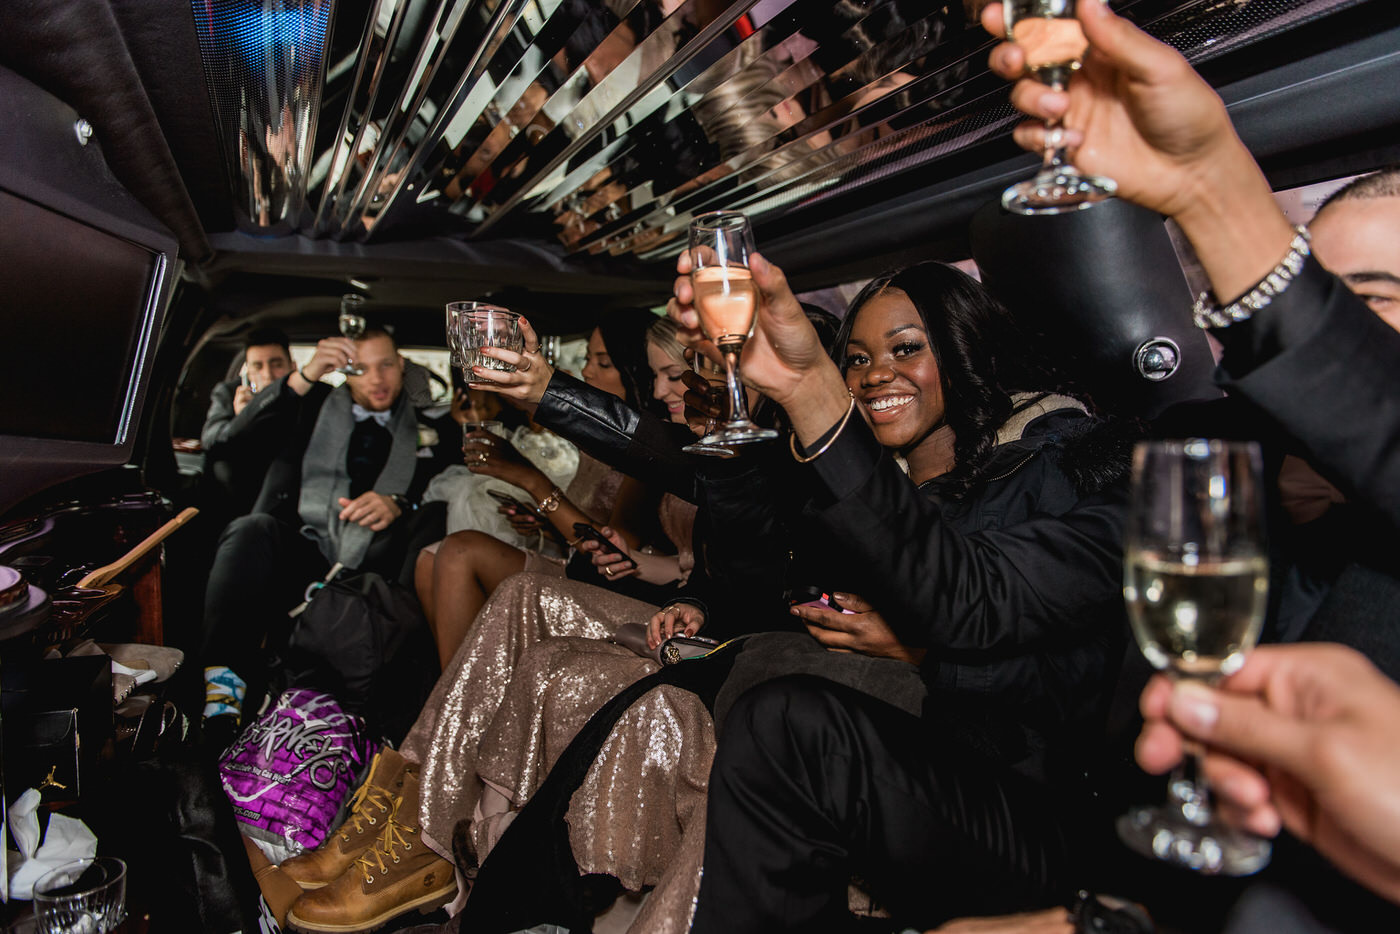 Wedding party toast inside limo in Toronto